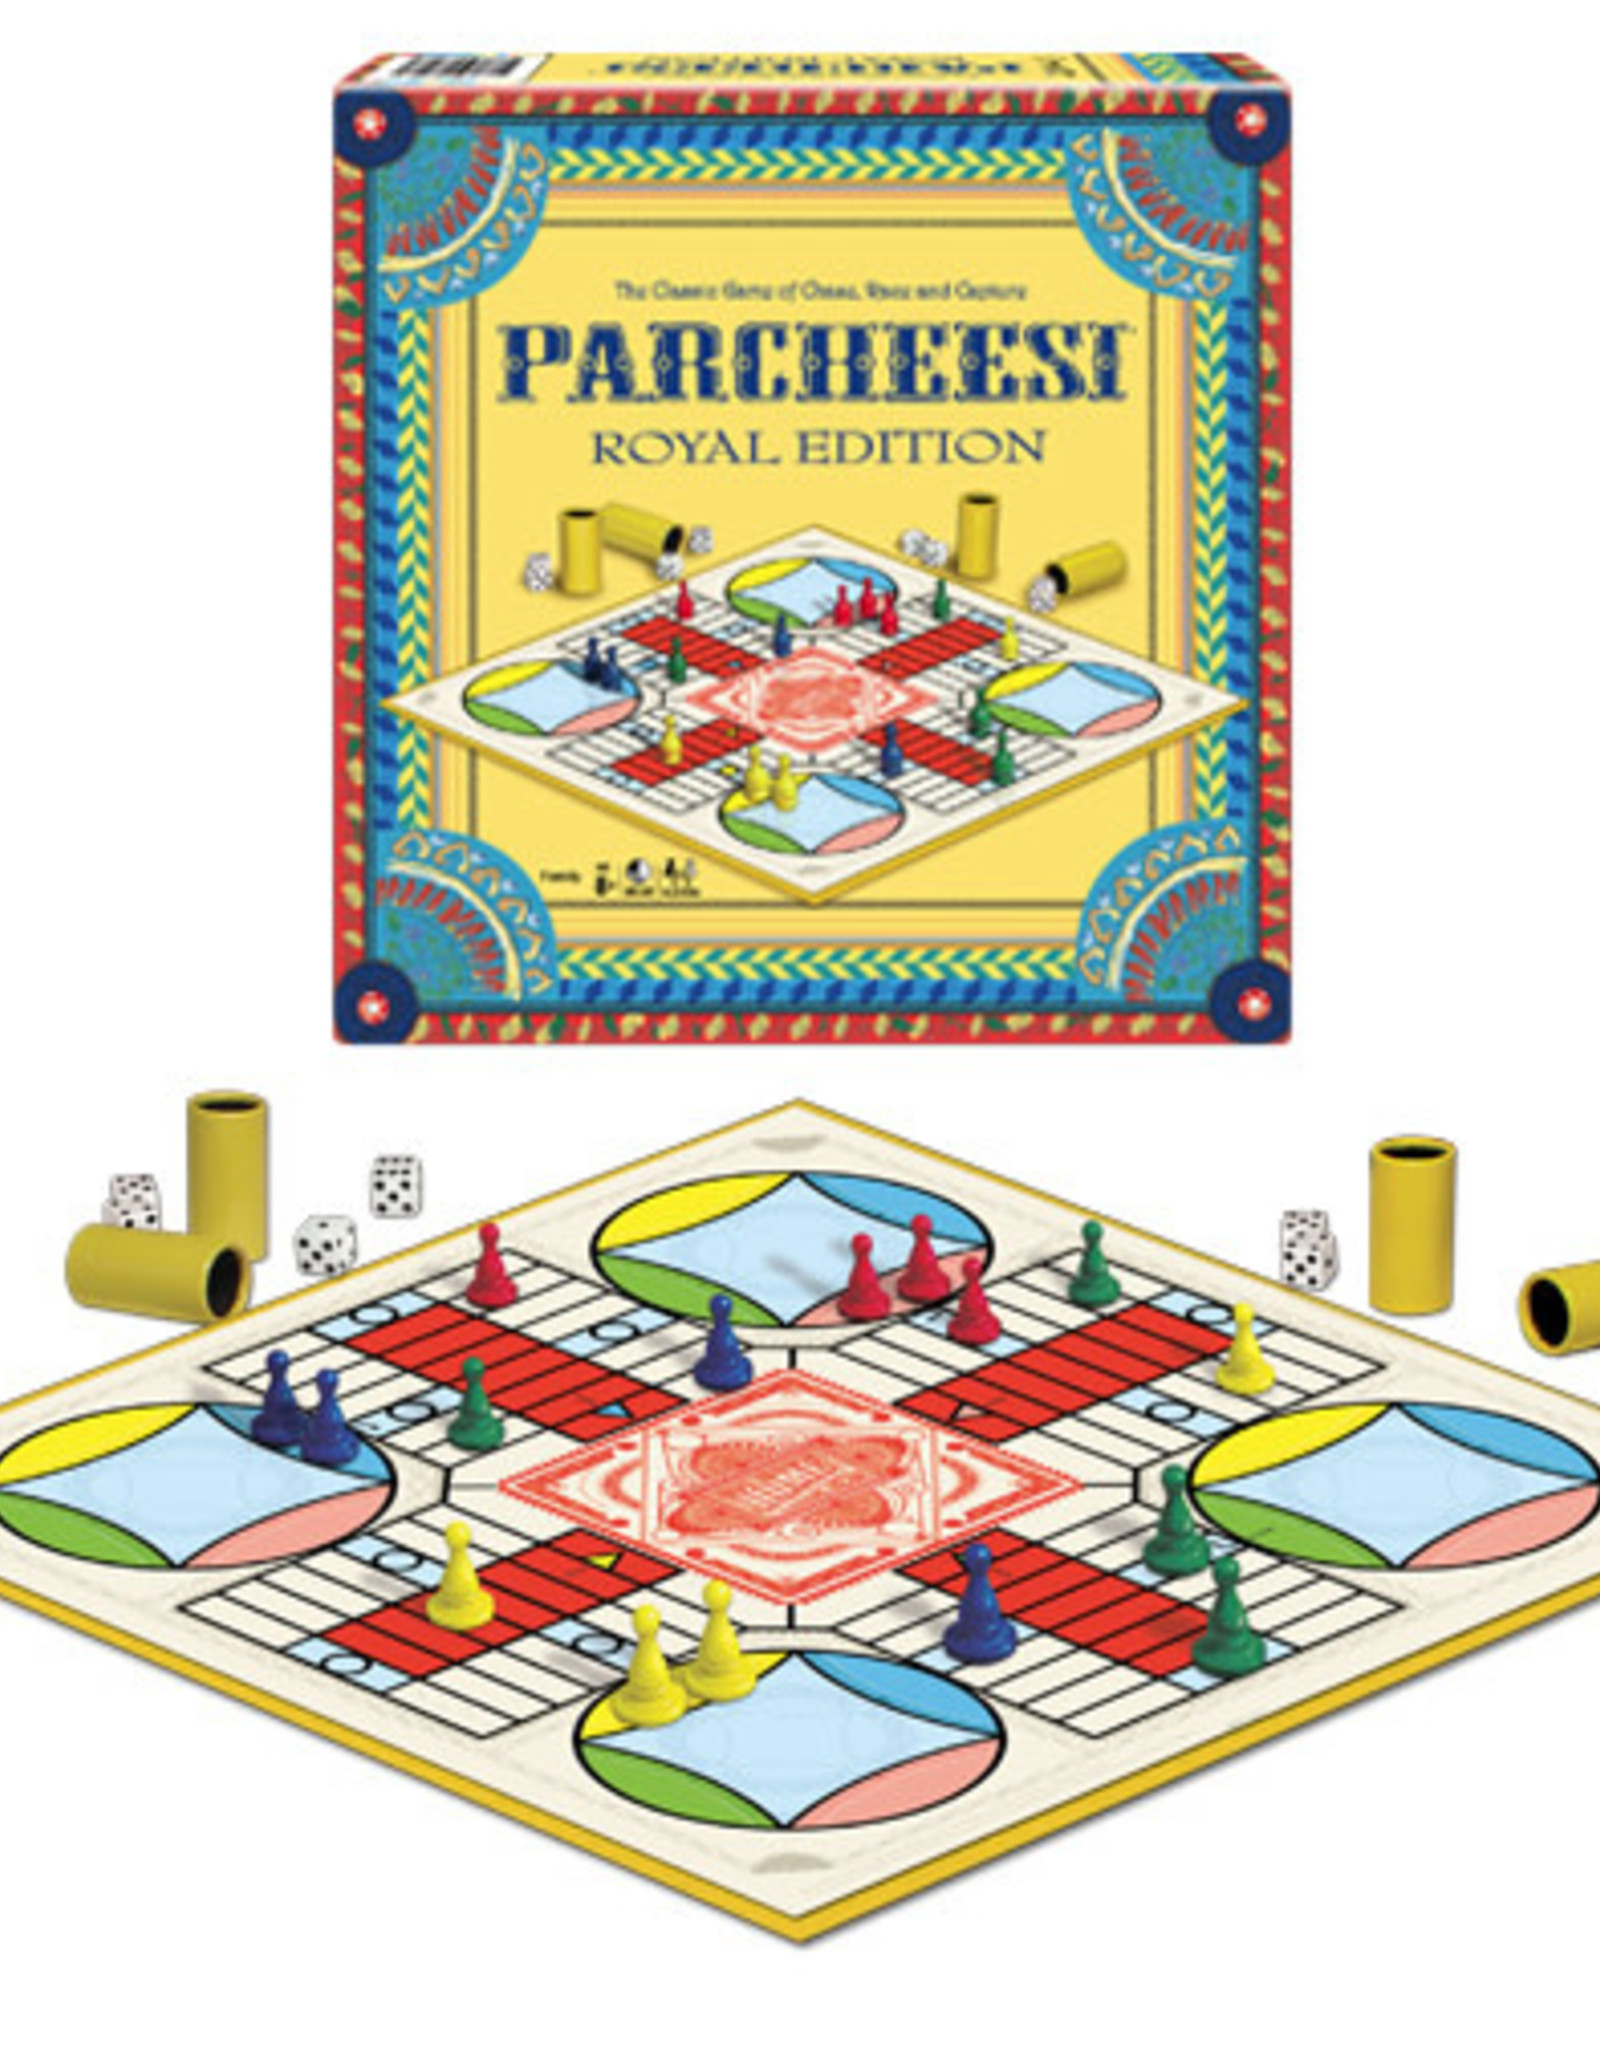 Hasbro Parcheesi Royal Edition